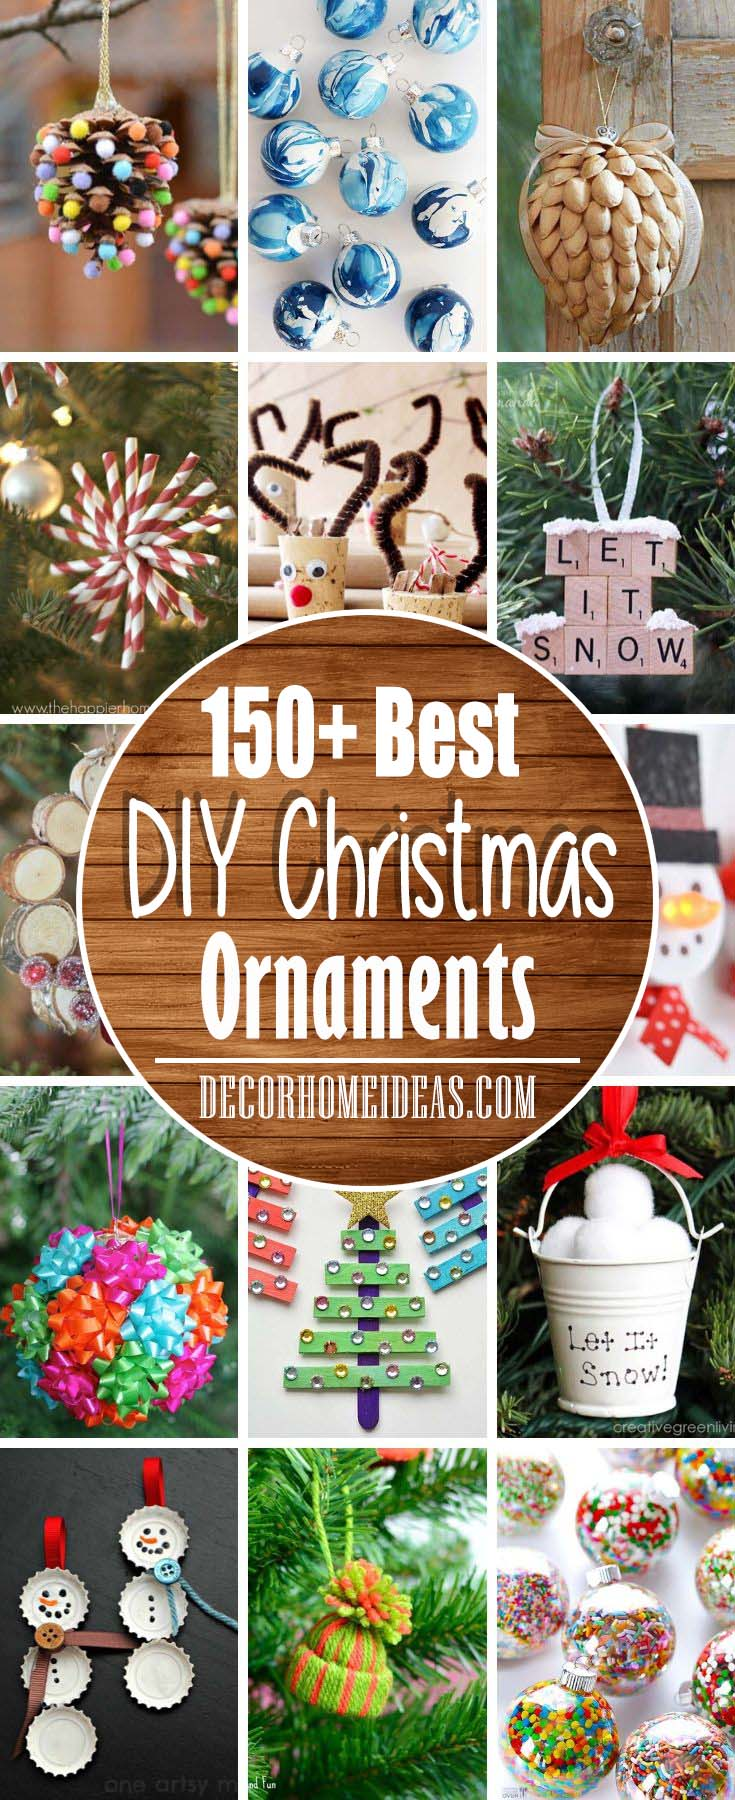 DIY Christmas Ornaments, Best Ideas and Photos #Christmas #ornaments #diy #decorhomeideas